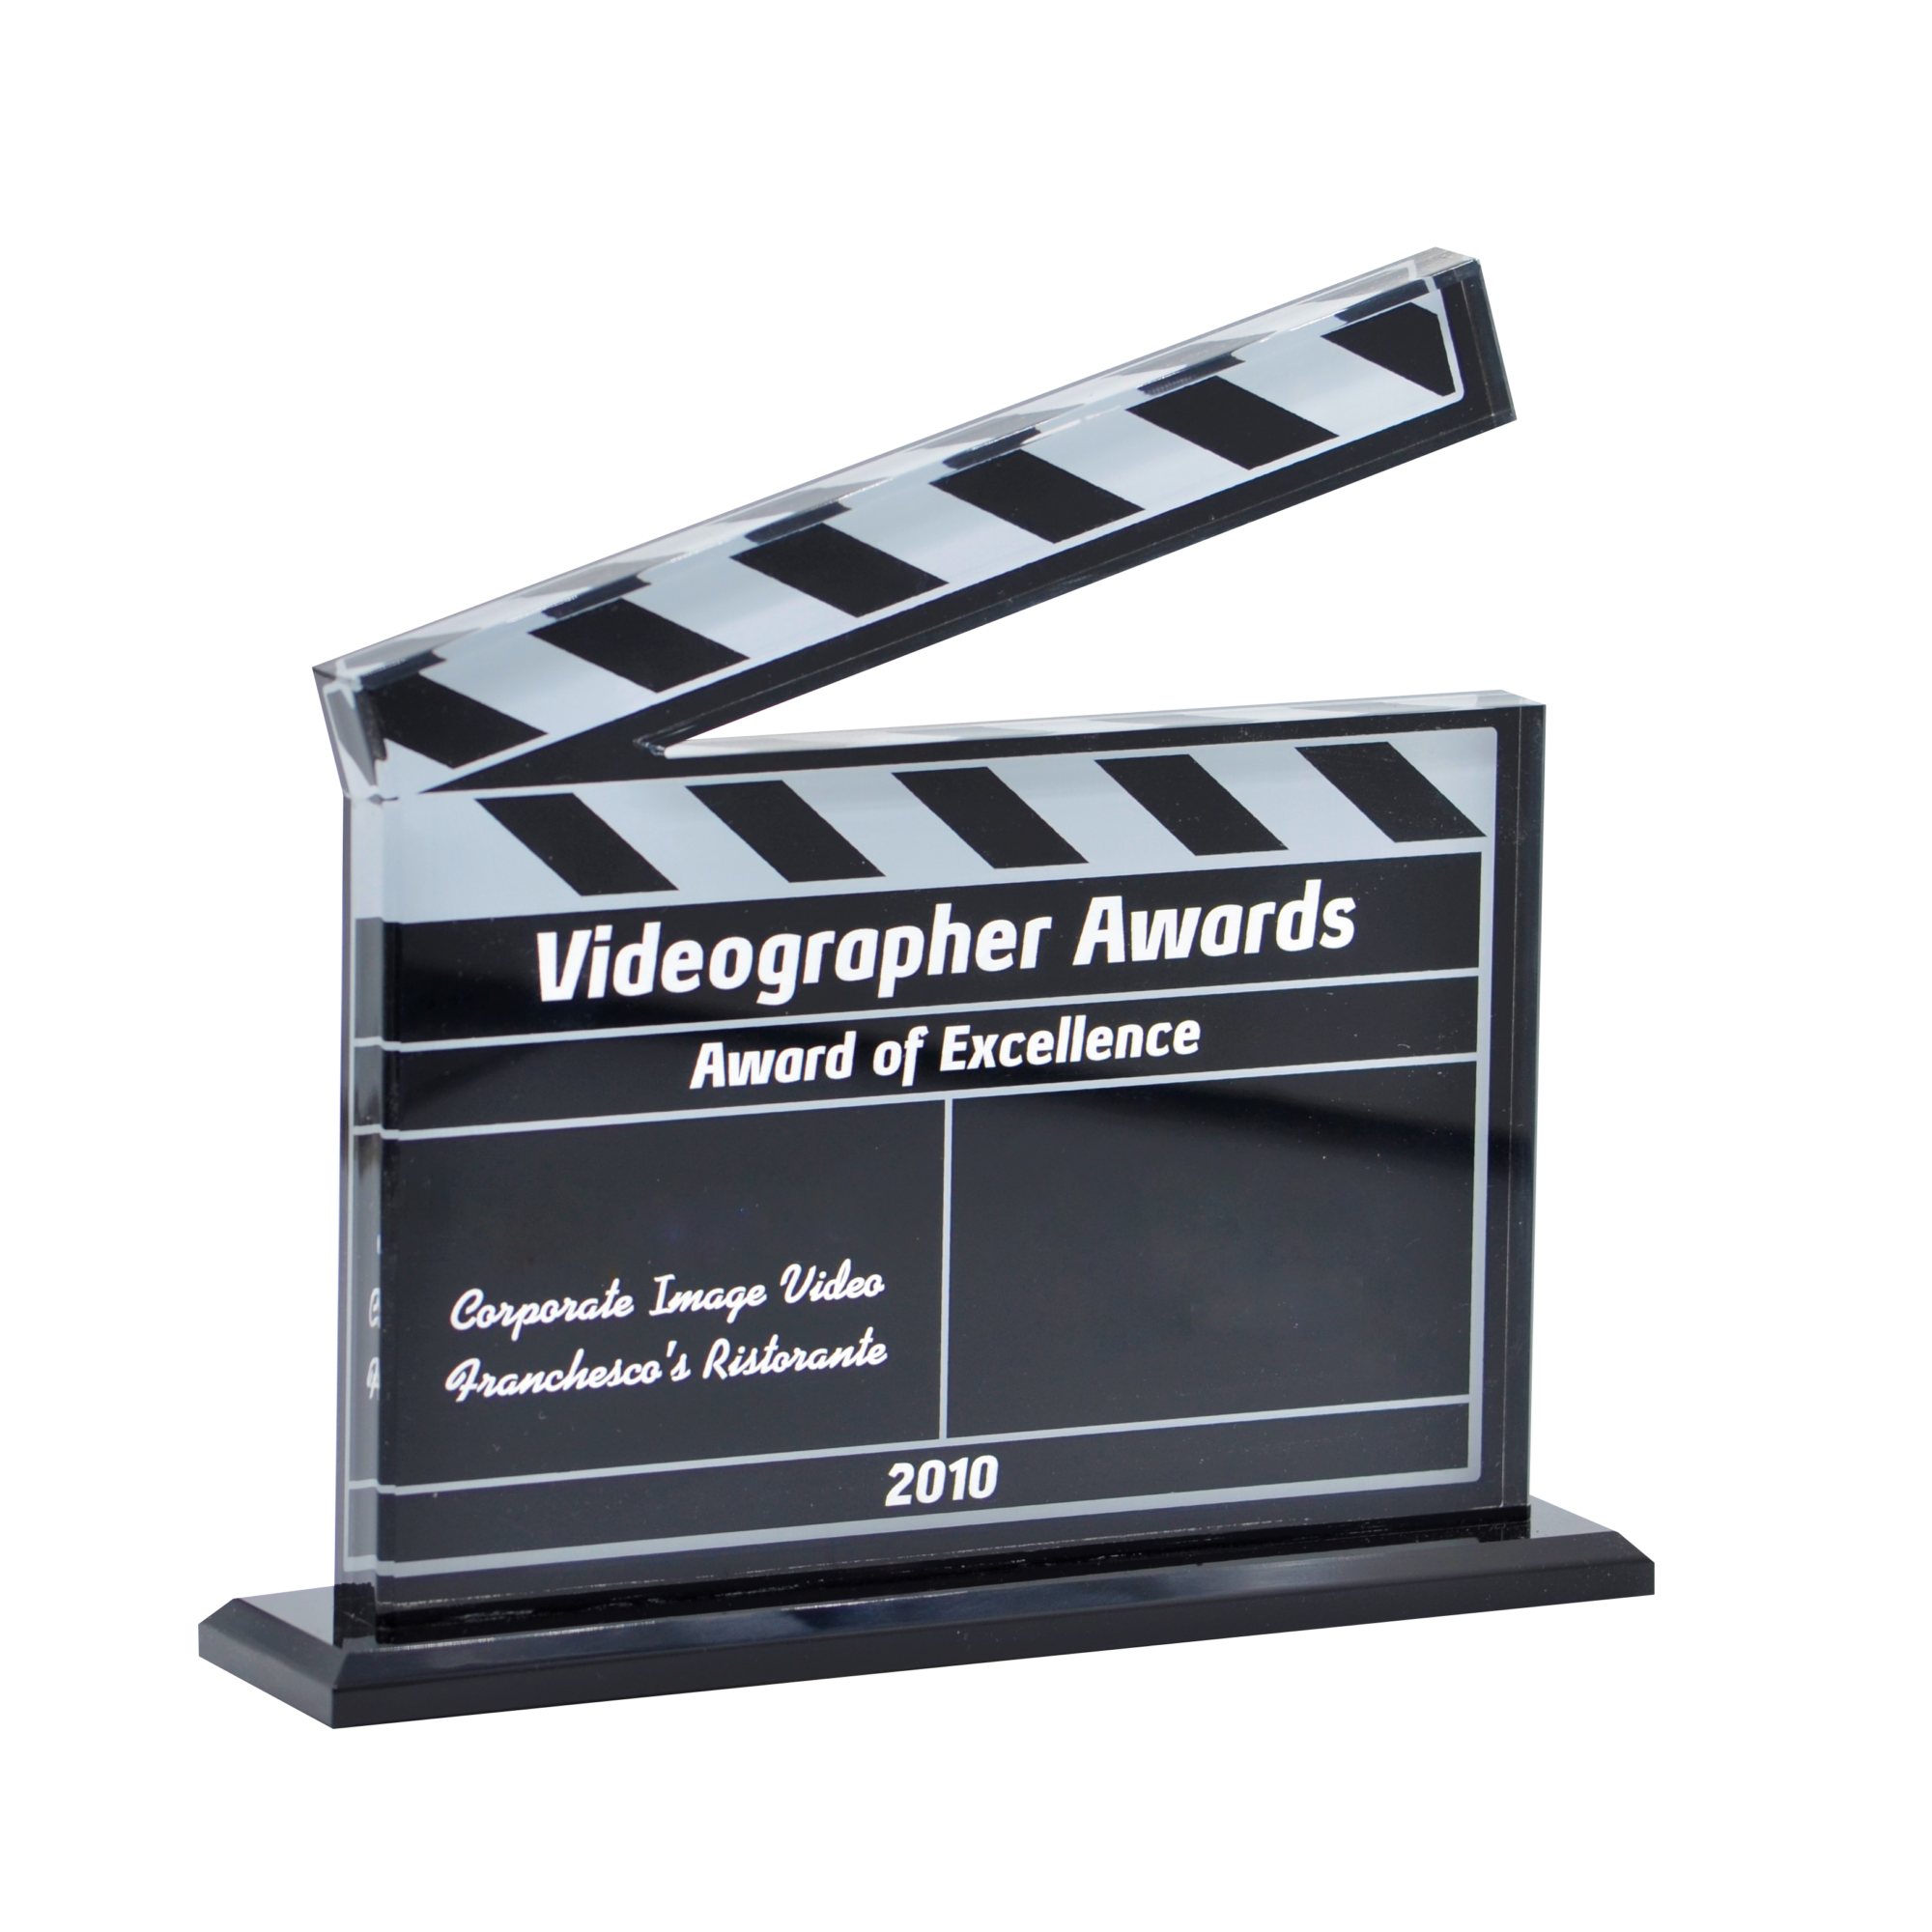 The Videographer Award